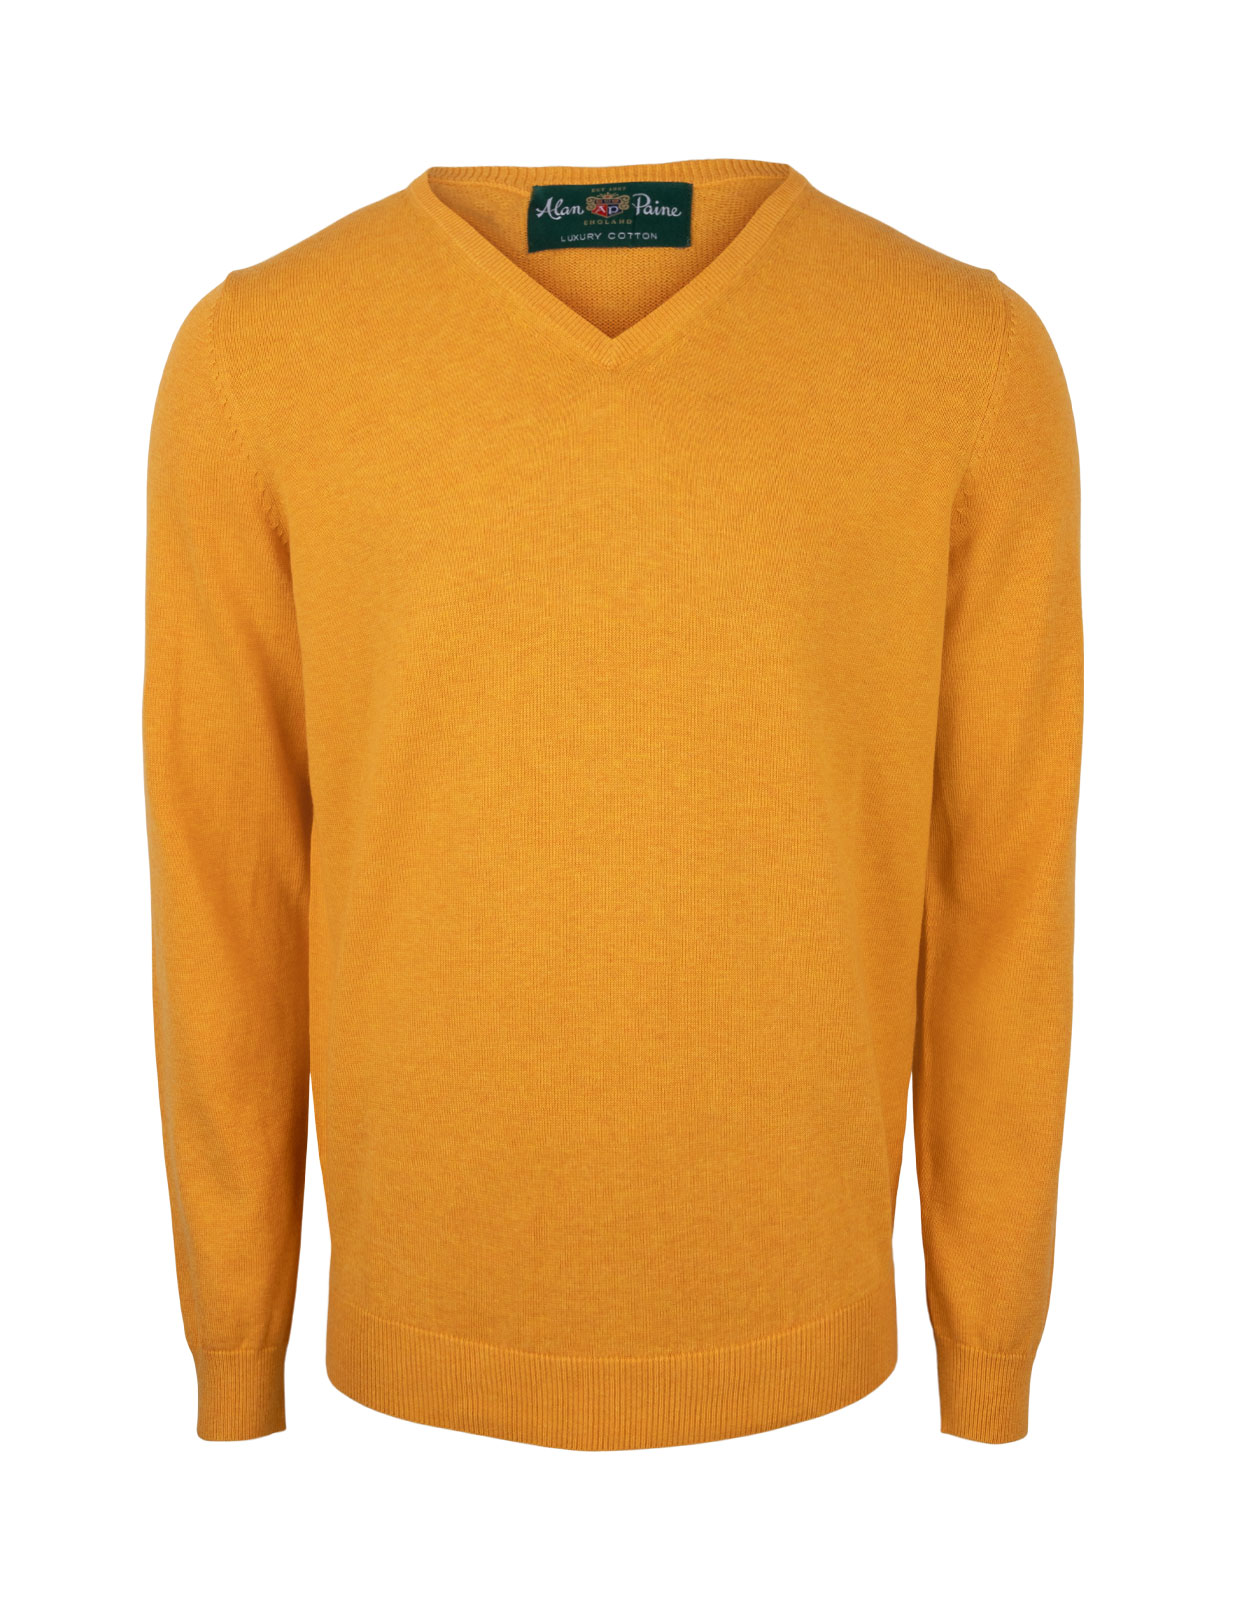 Rothwell Vee Neck Cotton Cashmere Sunrise